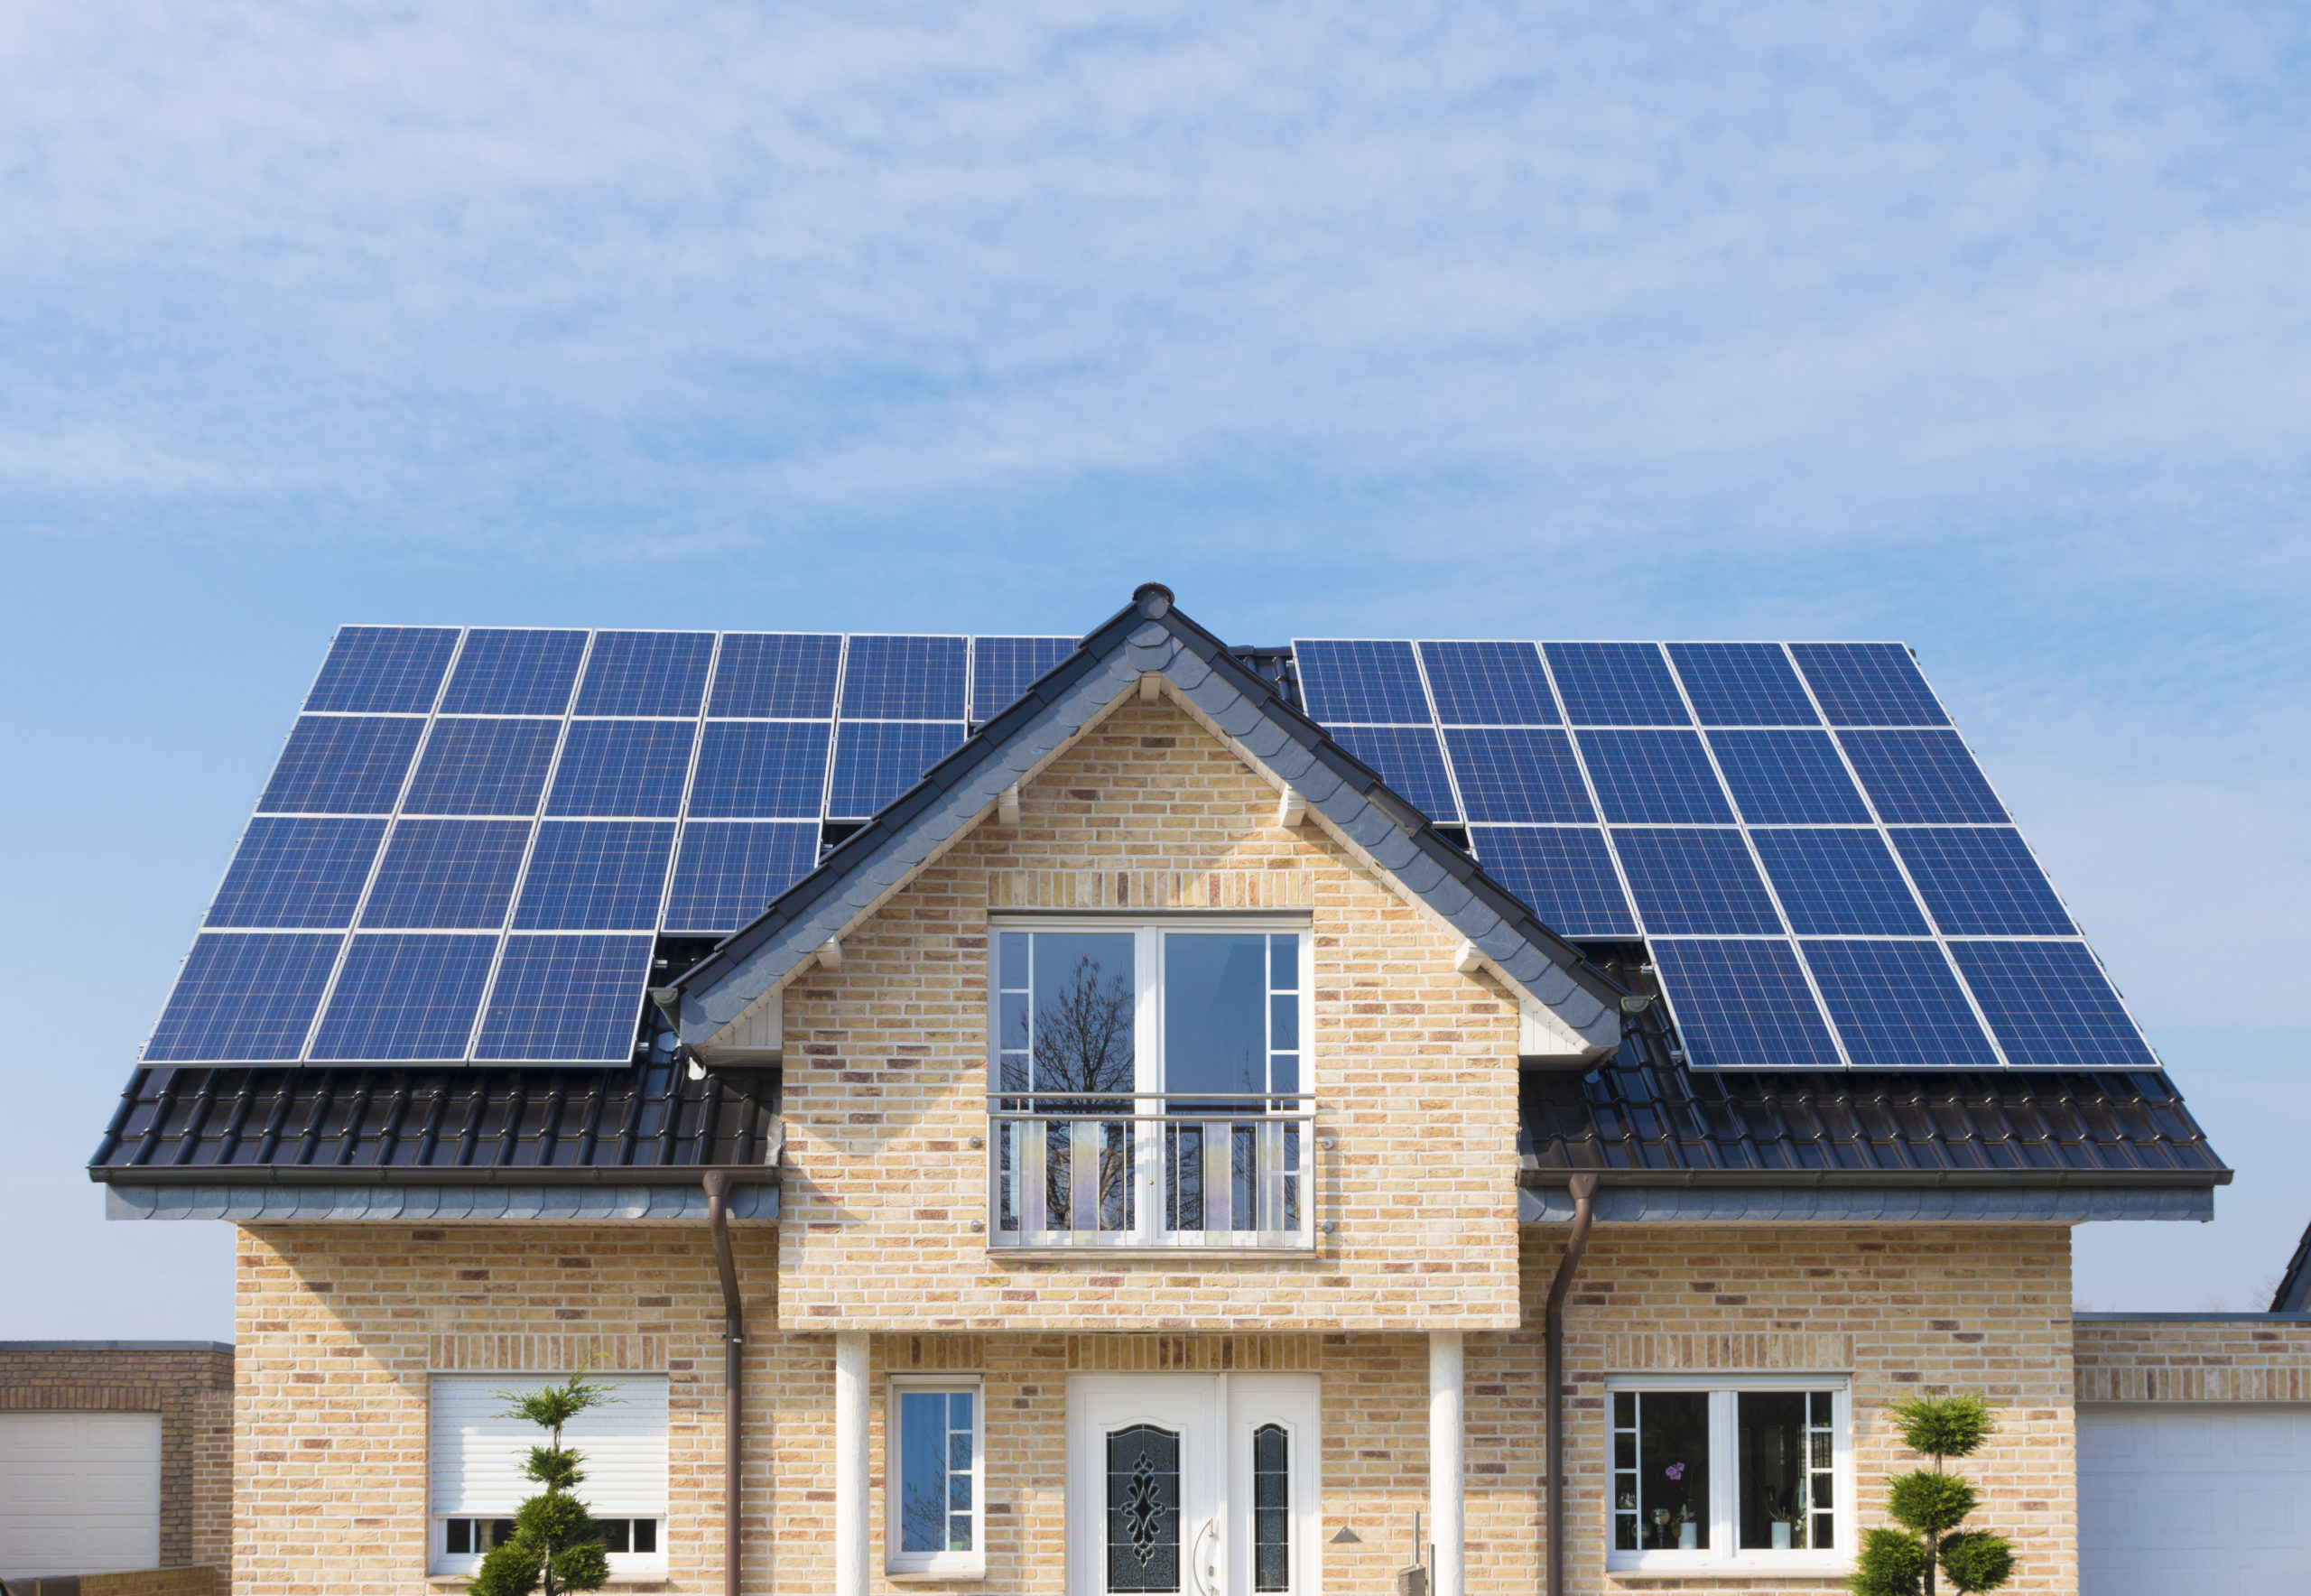 Gronau, Germany - March 6, 2014: New house with solar panels on its roof. In Germany solar energy is heavily subsidized by the government